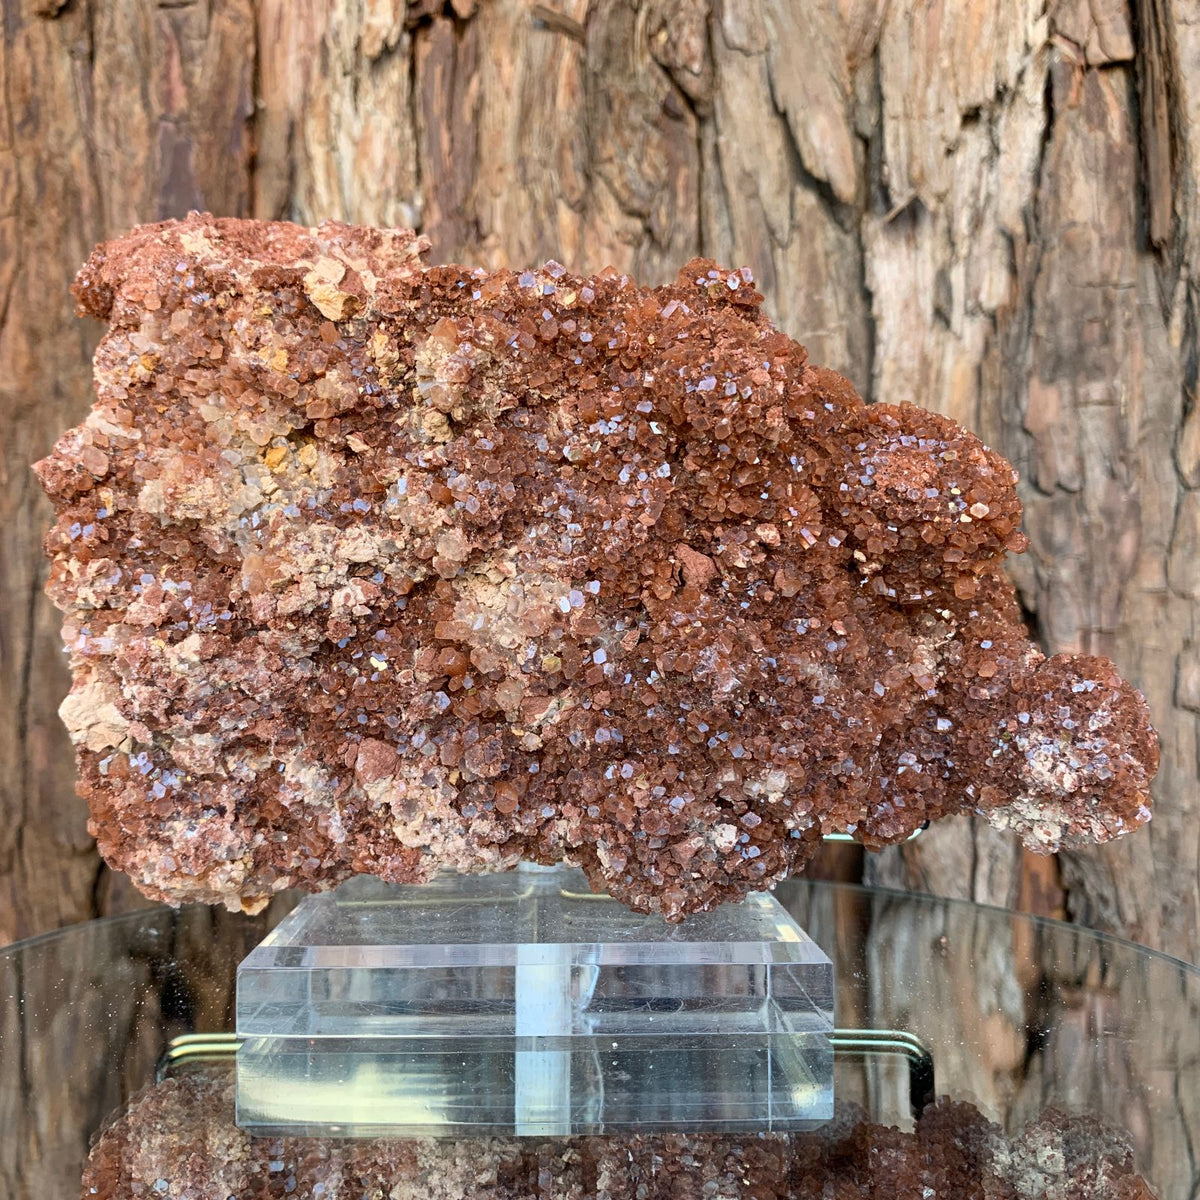 18.5cm 968g Aragonite from Morocco